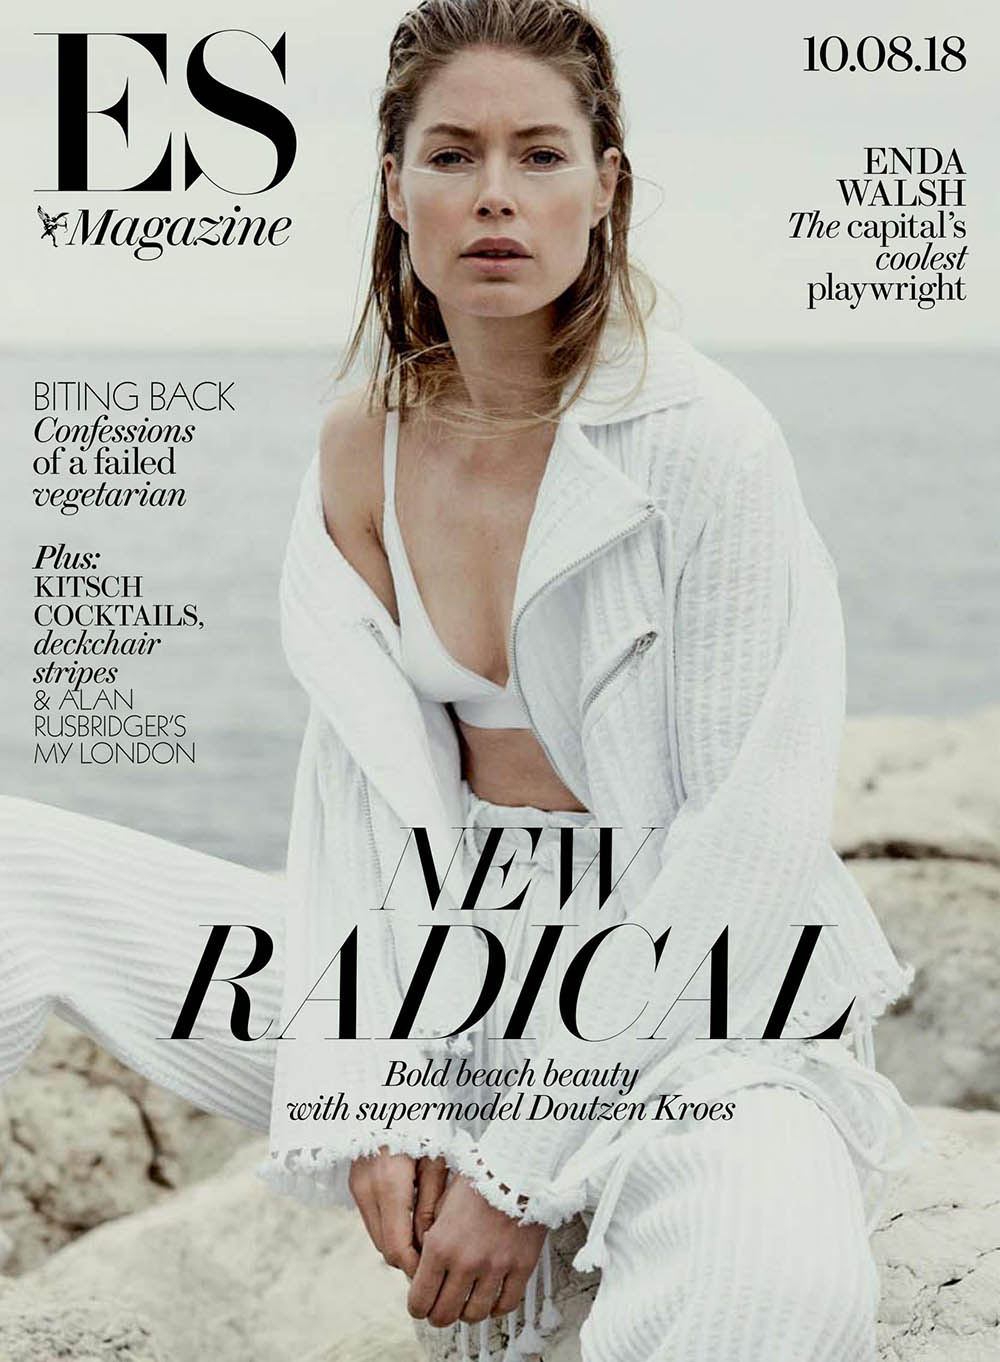 Doutzen Kroes covers ES Magazine August 10th, 2018 by Rory Payne